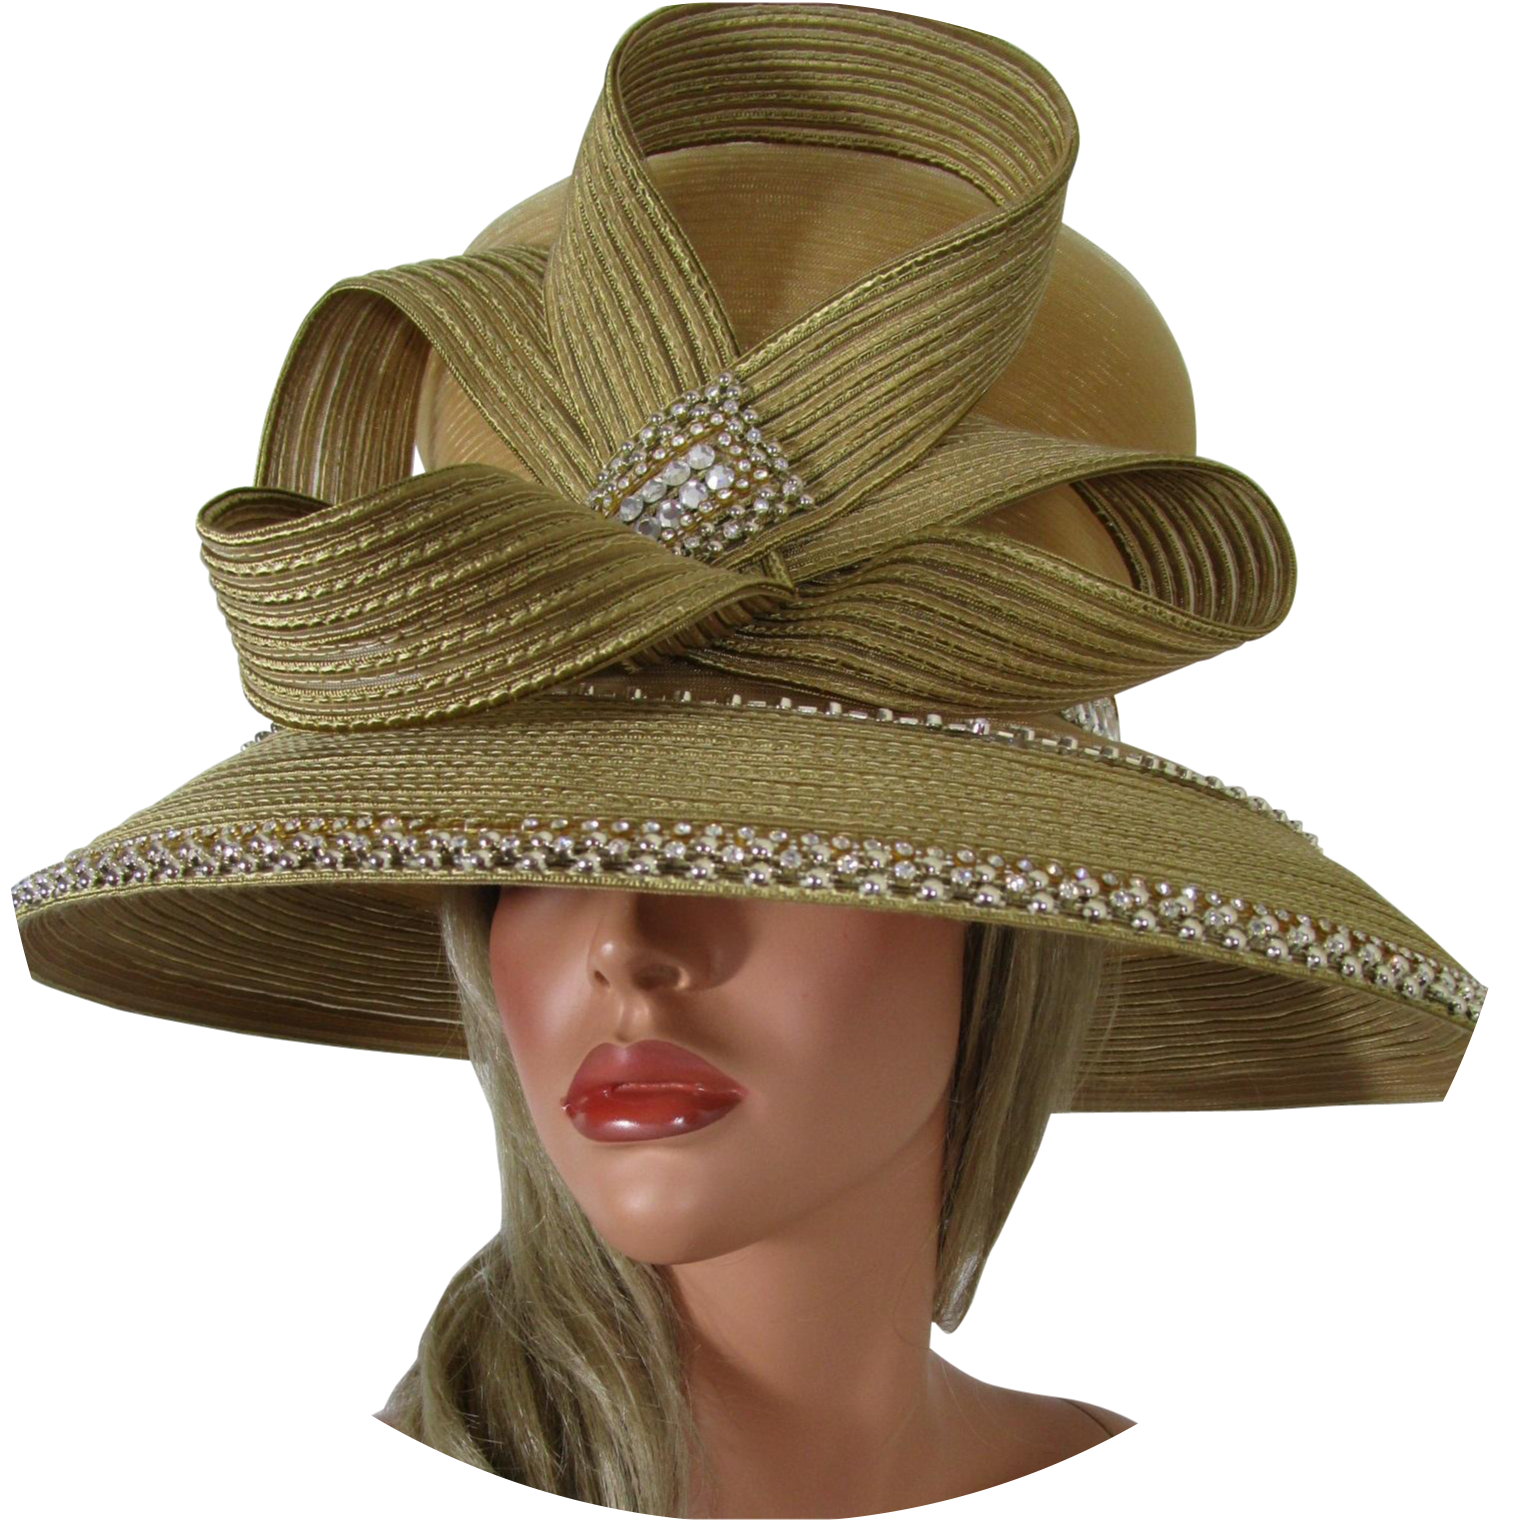 church-hat-png-5png